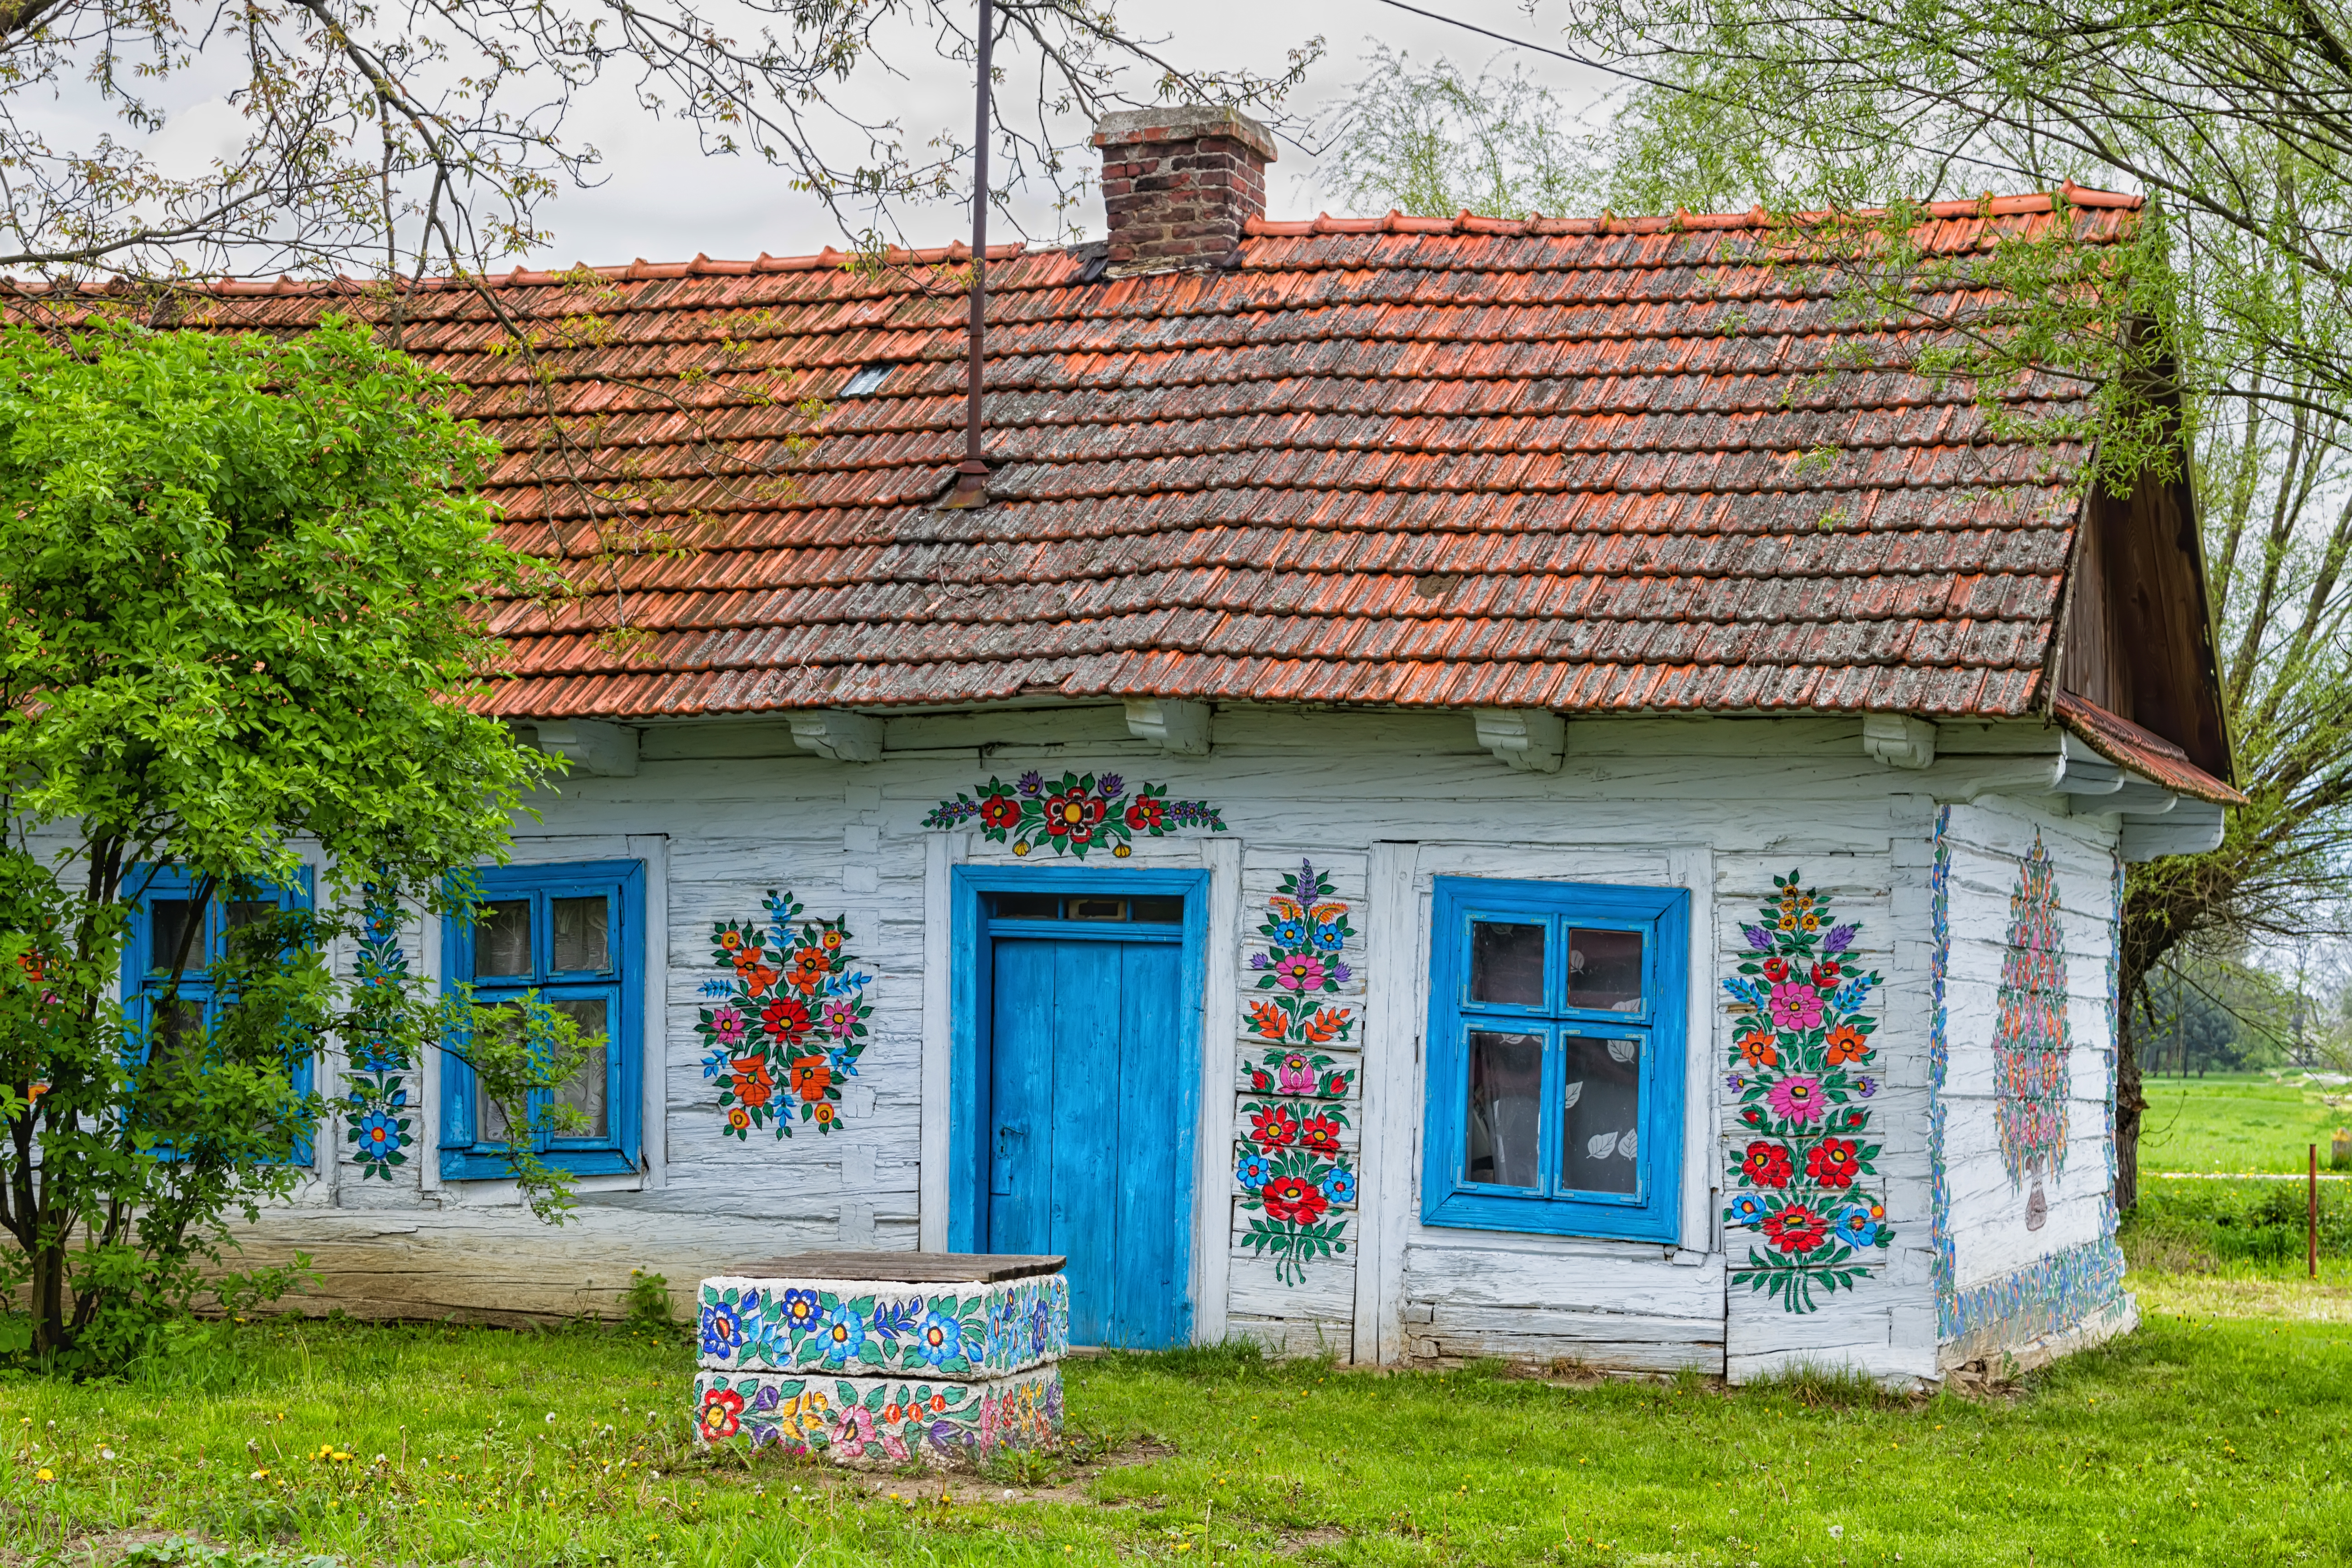 The exterior of a traditional house in Poland. The roof is red, the shutters and door are blue, and there are decorative flowers painted on the white walls.